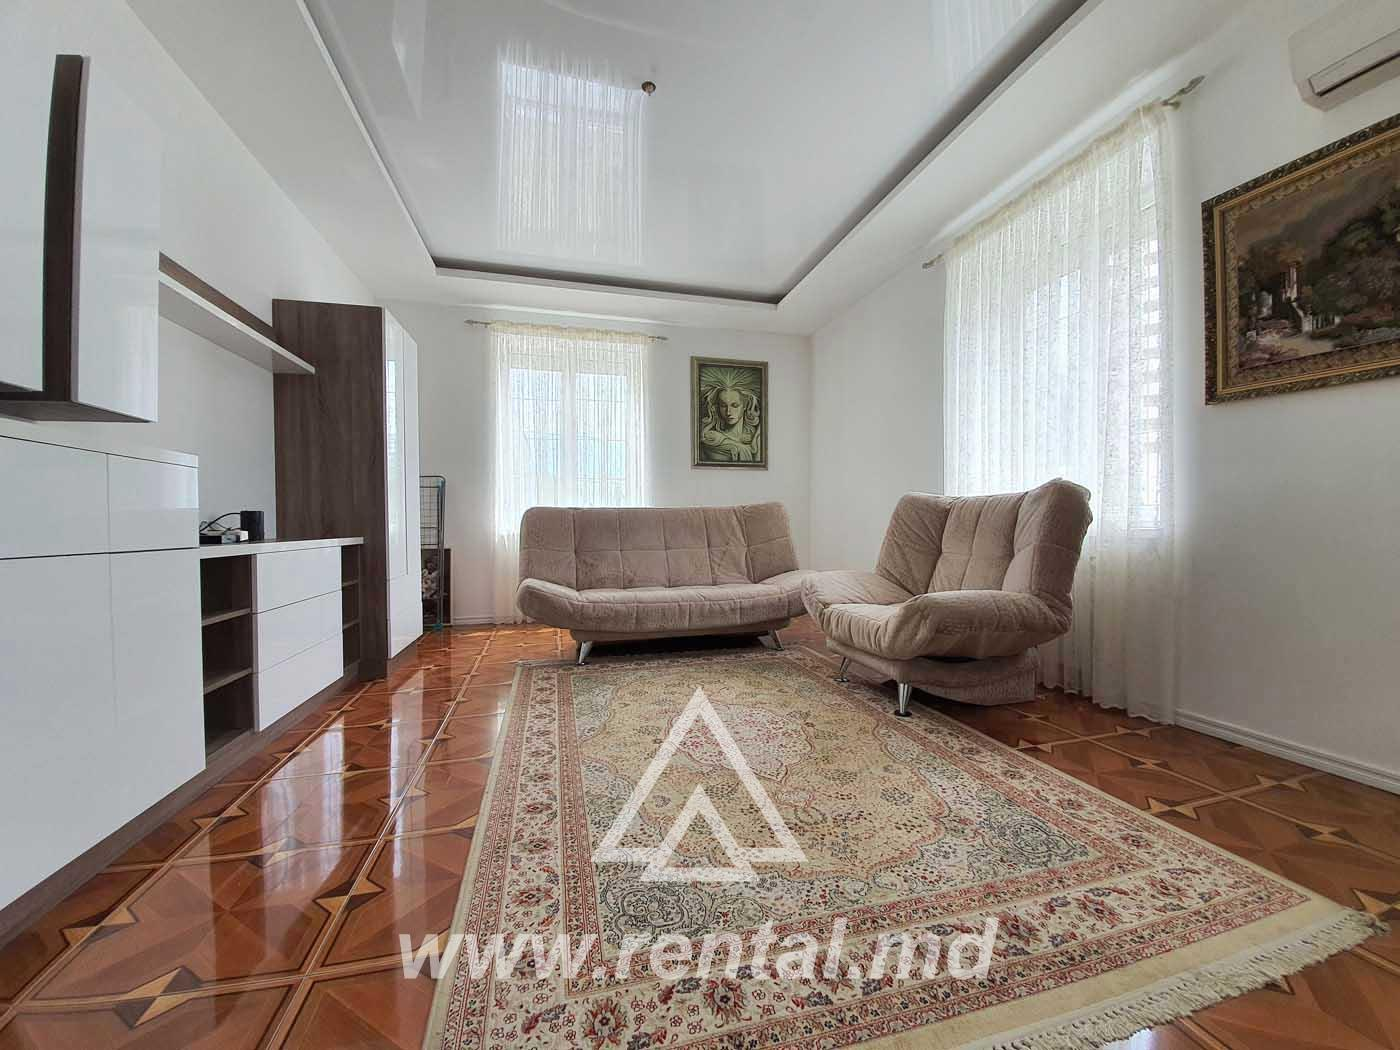 Apartment for rent on Stefan cel Mare